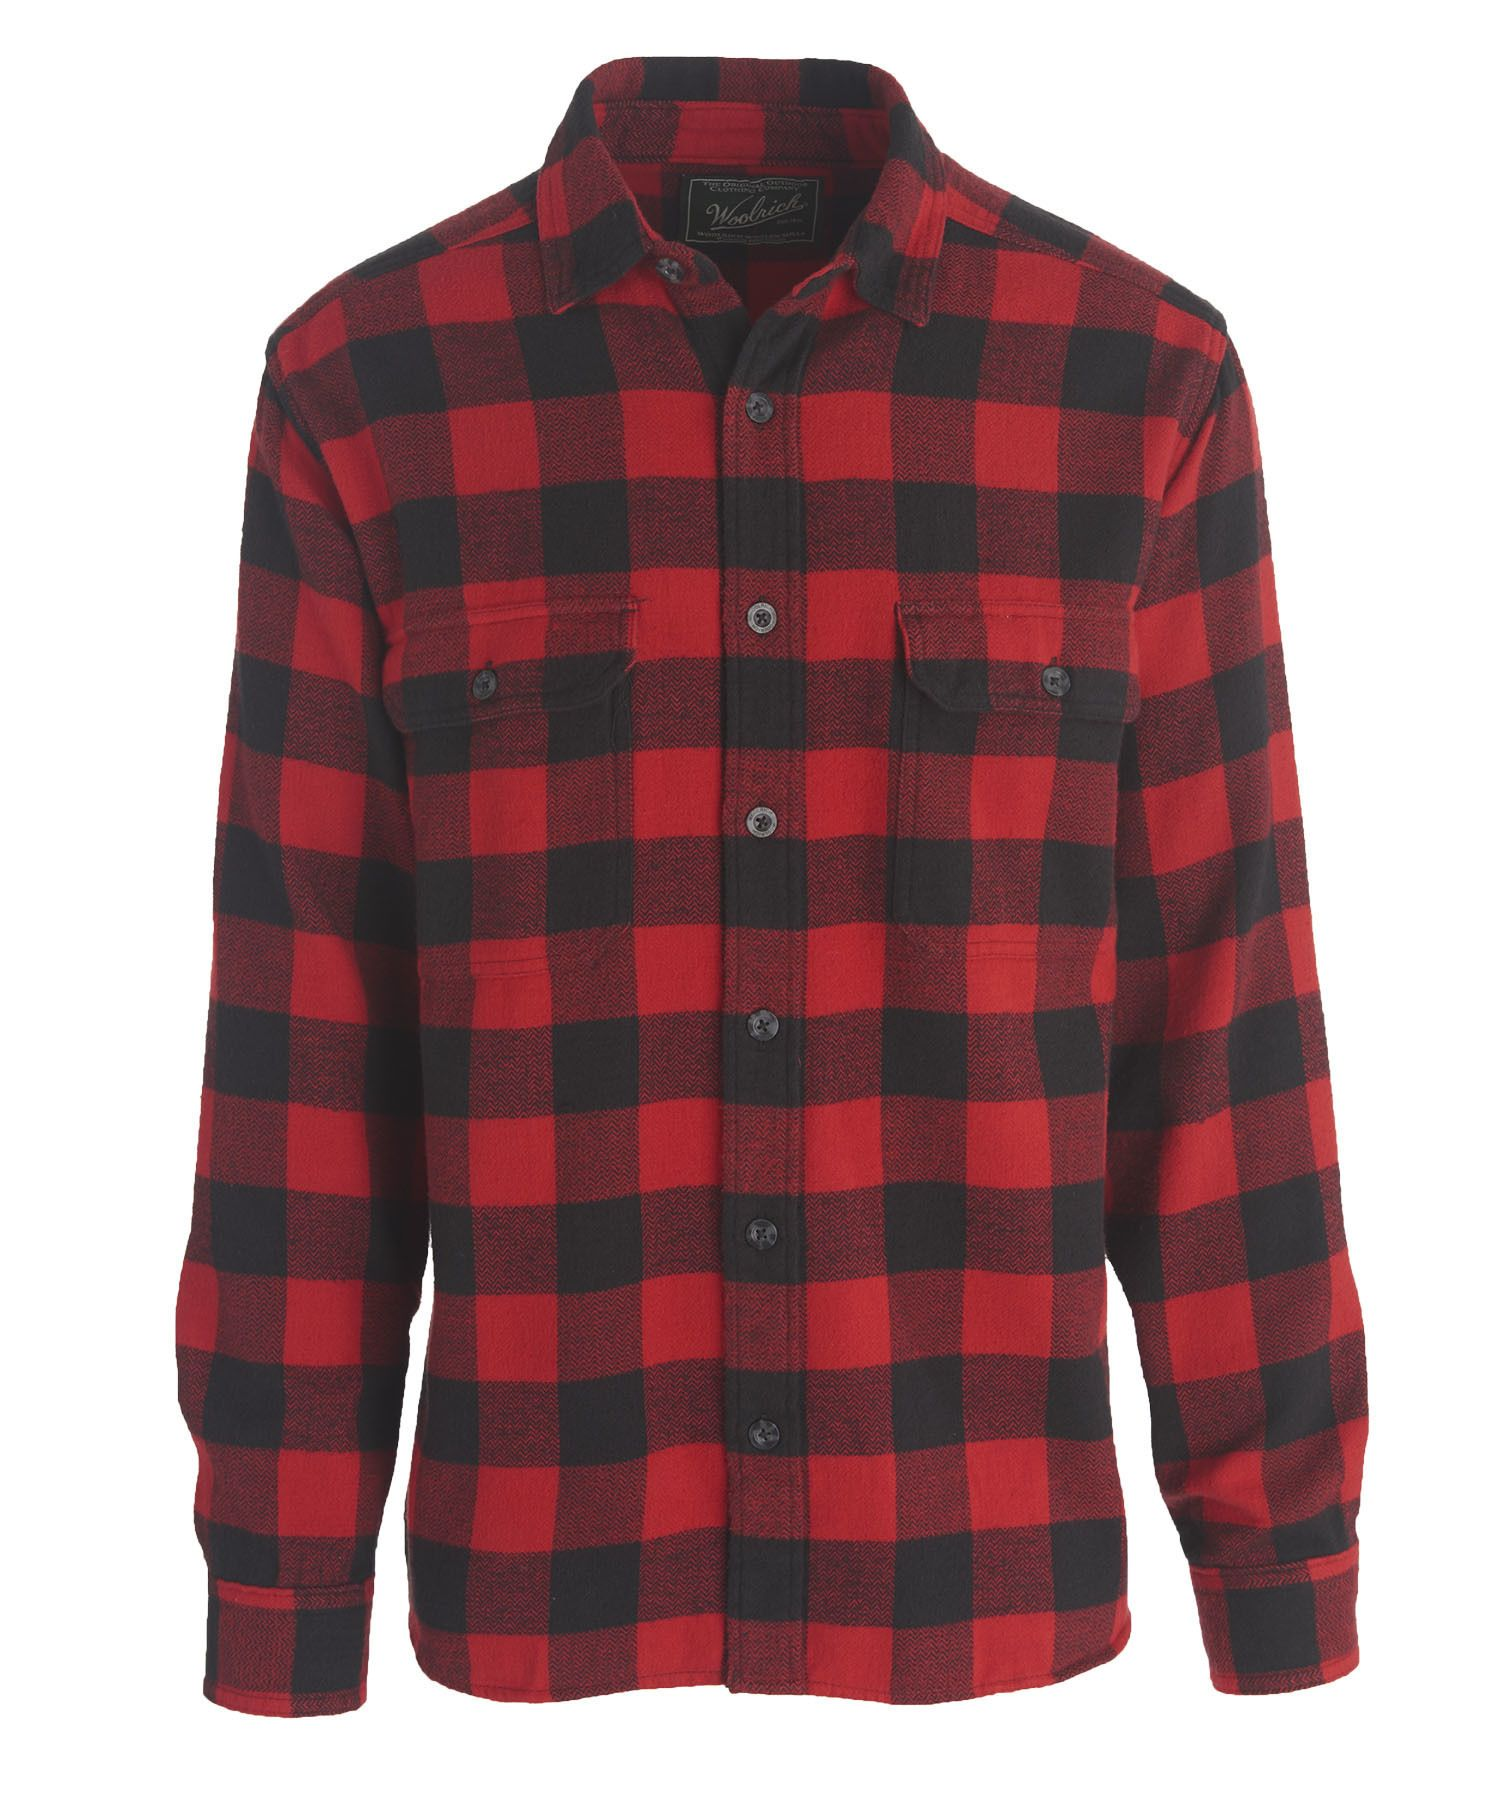 Men's Oxbow Bend Plaid Flannel Shirt | Flannel Shirt | Pinterest ...